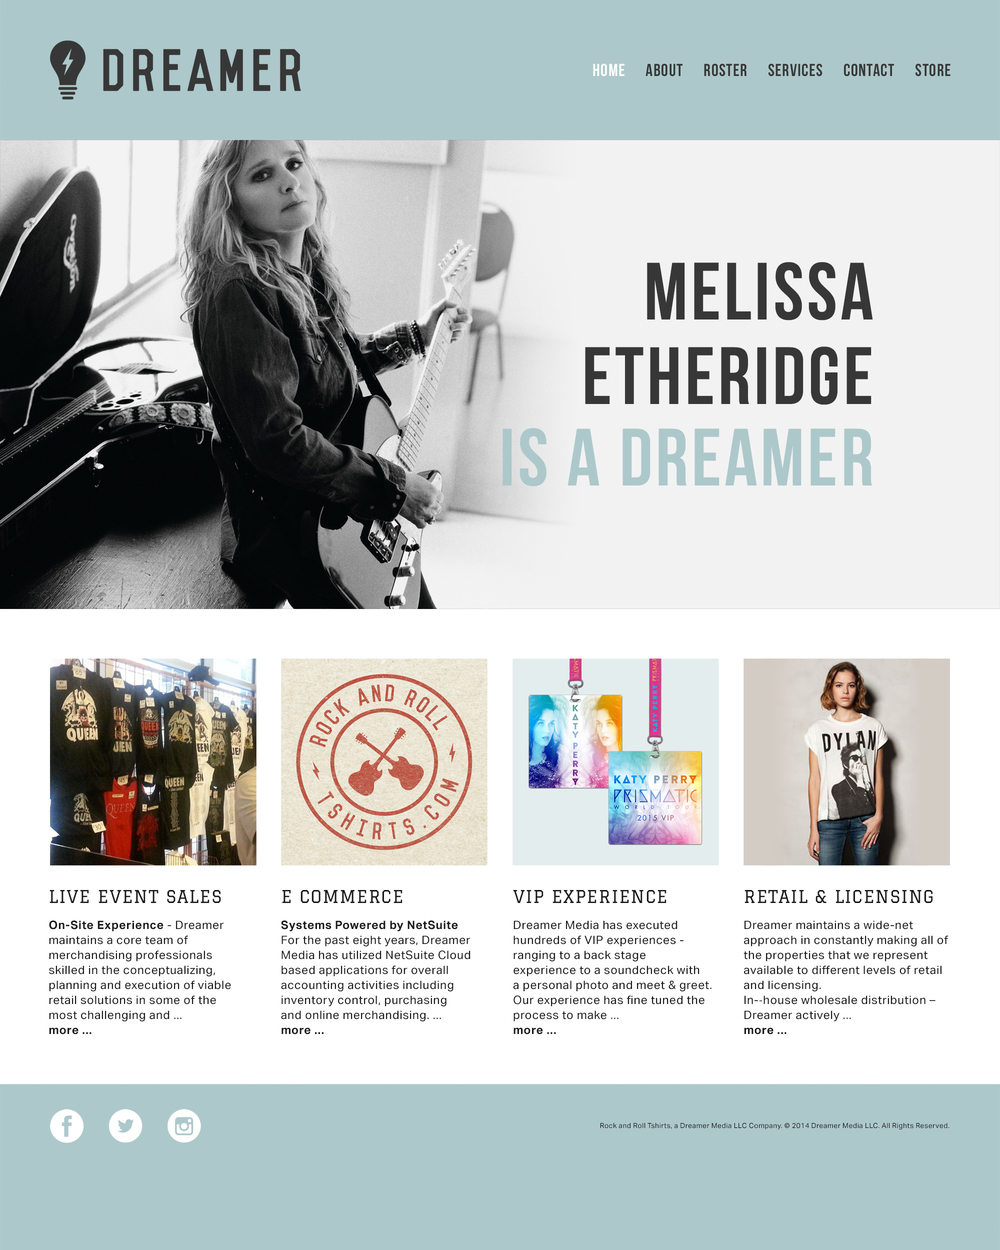 HEADER: MELISSA ETHERIDGE